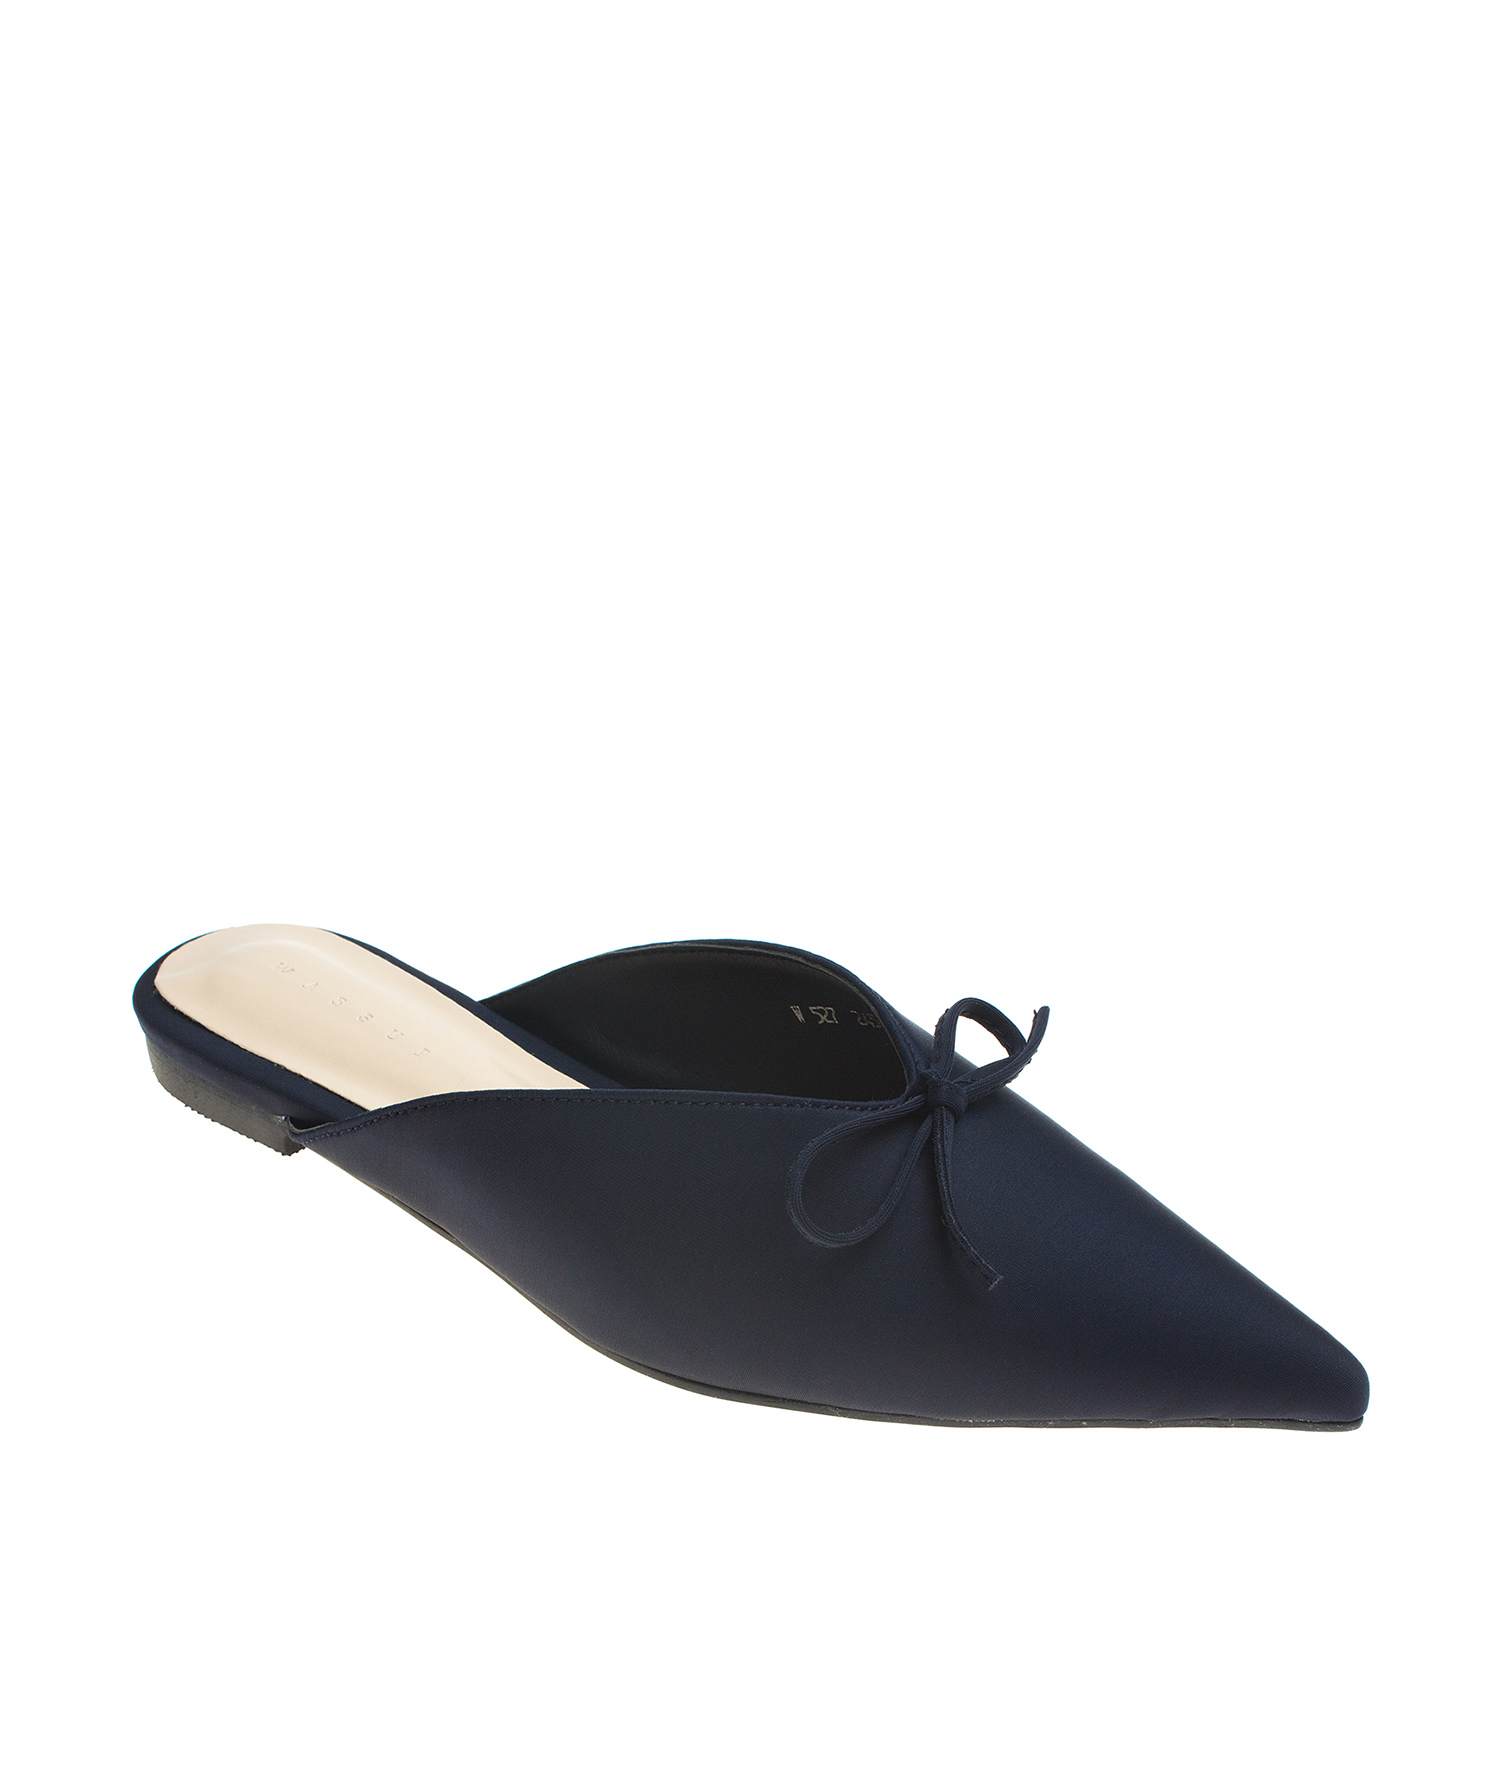 AnnaKastle Womens Pointy Toe Bow Mule Slides Navy